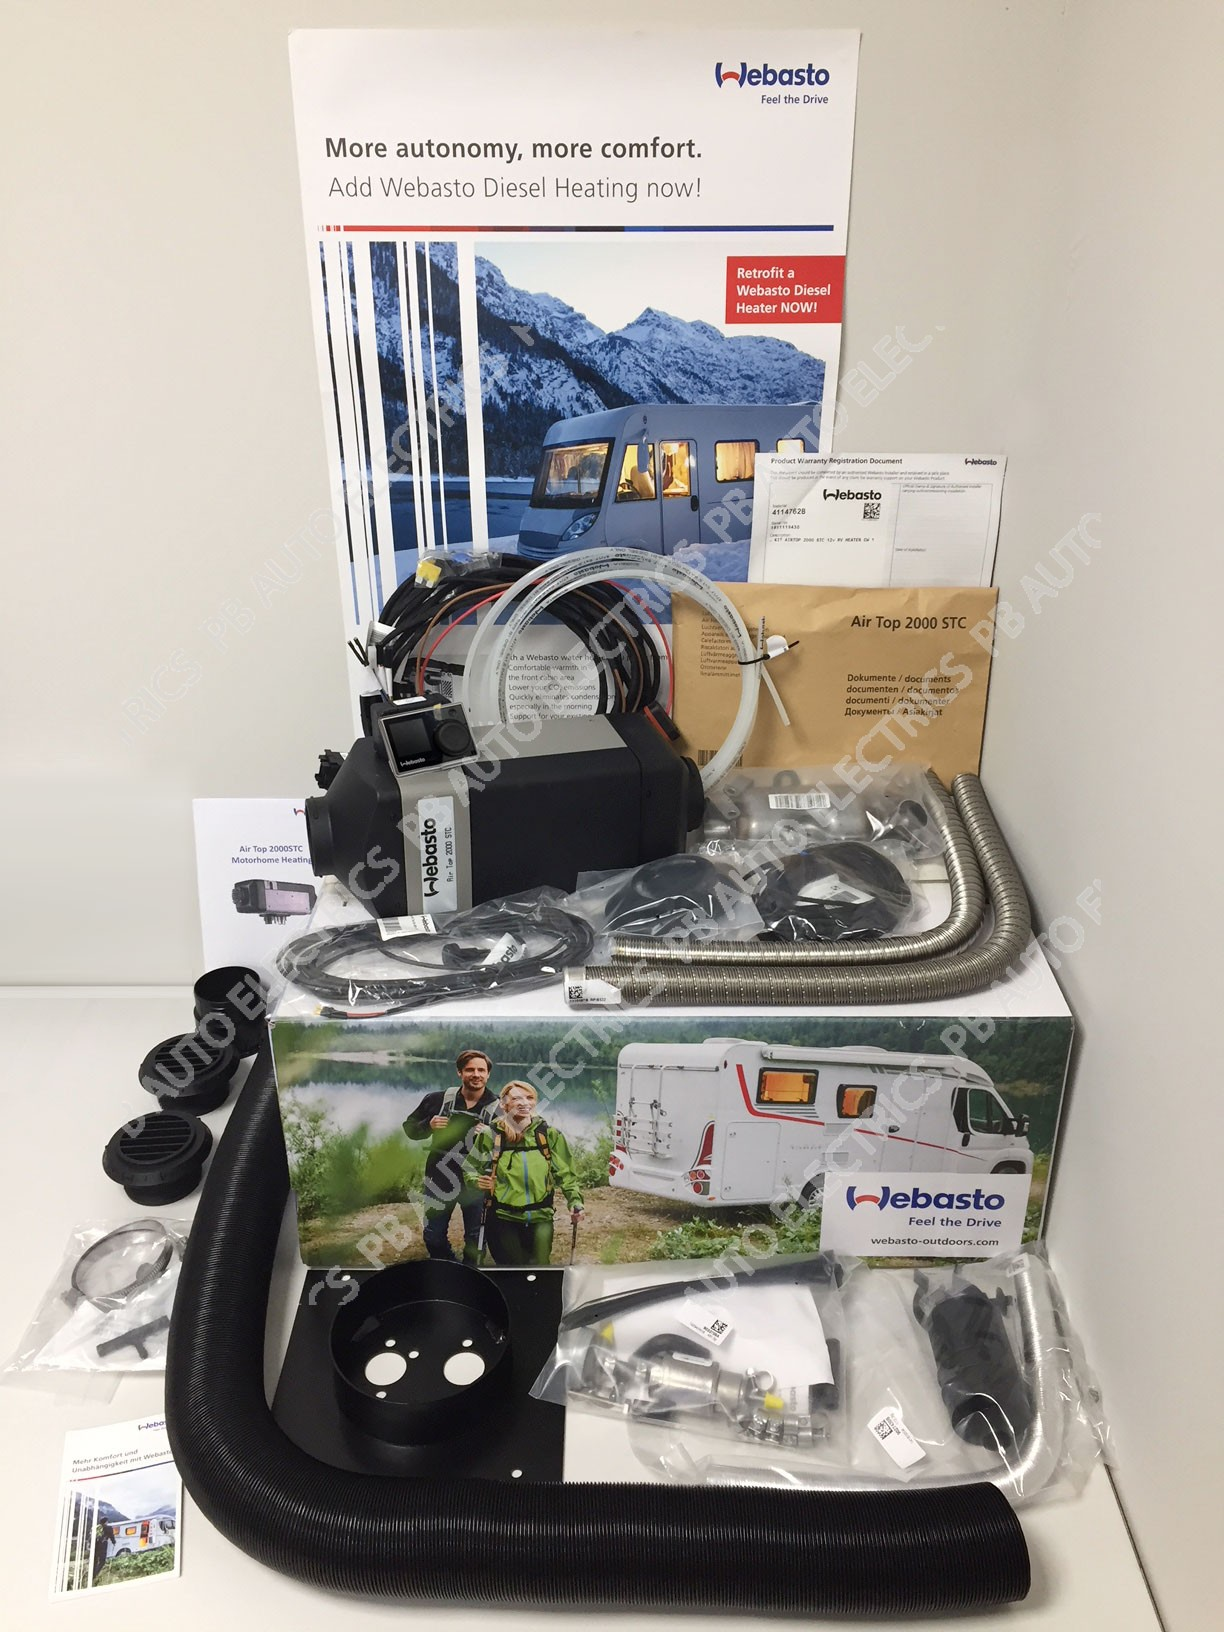 Webasto Air Top 2000 STC Motorhome RV Air Heater Diesel 12v RV MultiControl Internal Mount Kit & 1 Outlet Ducting Kit - 4114762C/RVMC/1